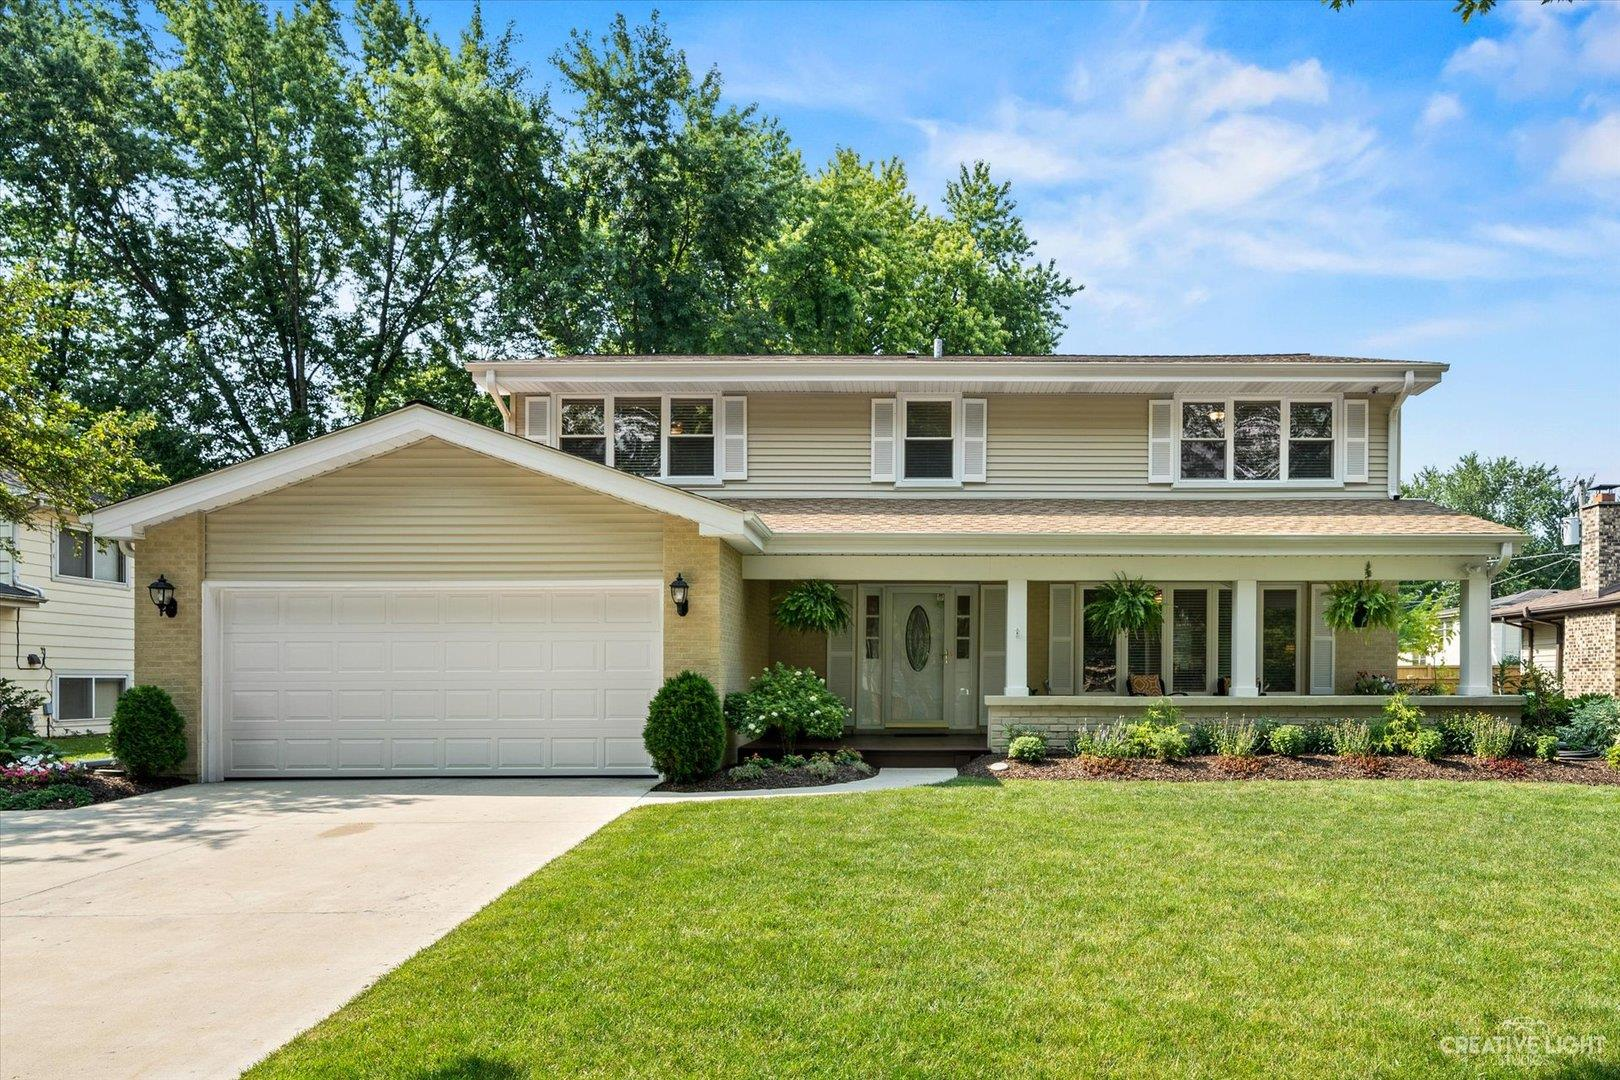 30w321 Country Lakes Drive, Naperville, IL 60563 - #: 11178158